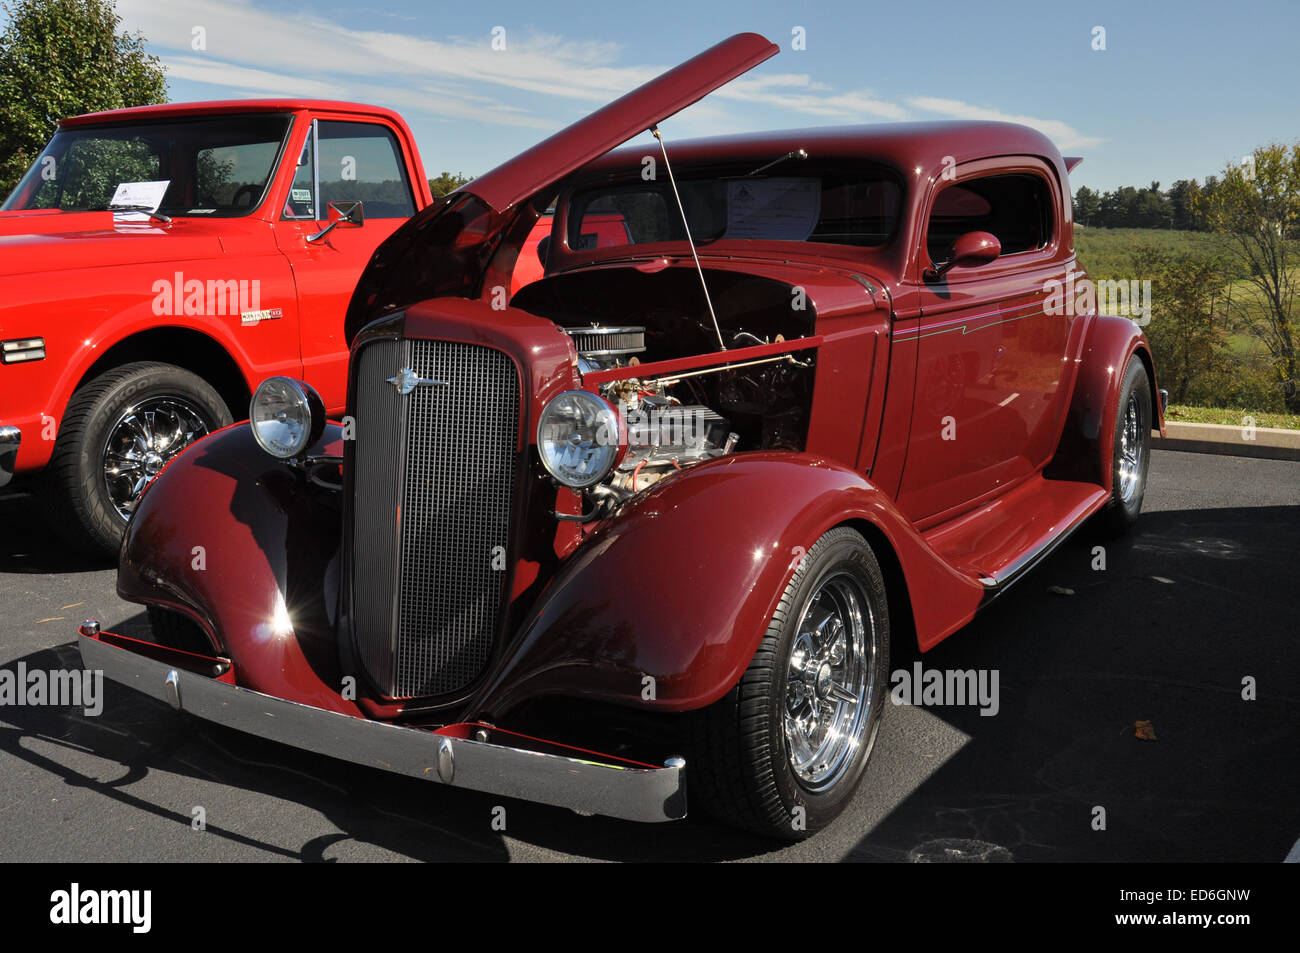 1930 Chevy Stock Photos & 1930 Chevy Stock Images - Alamy